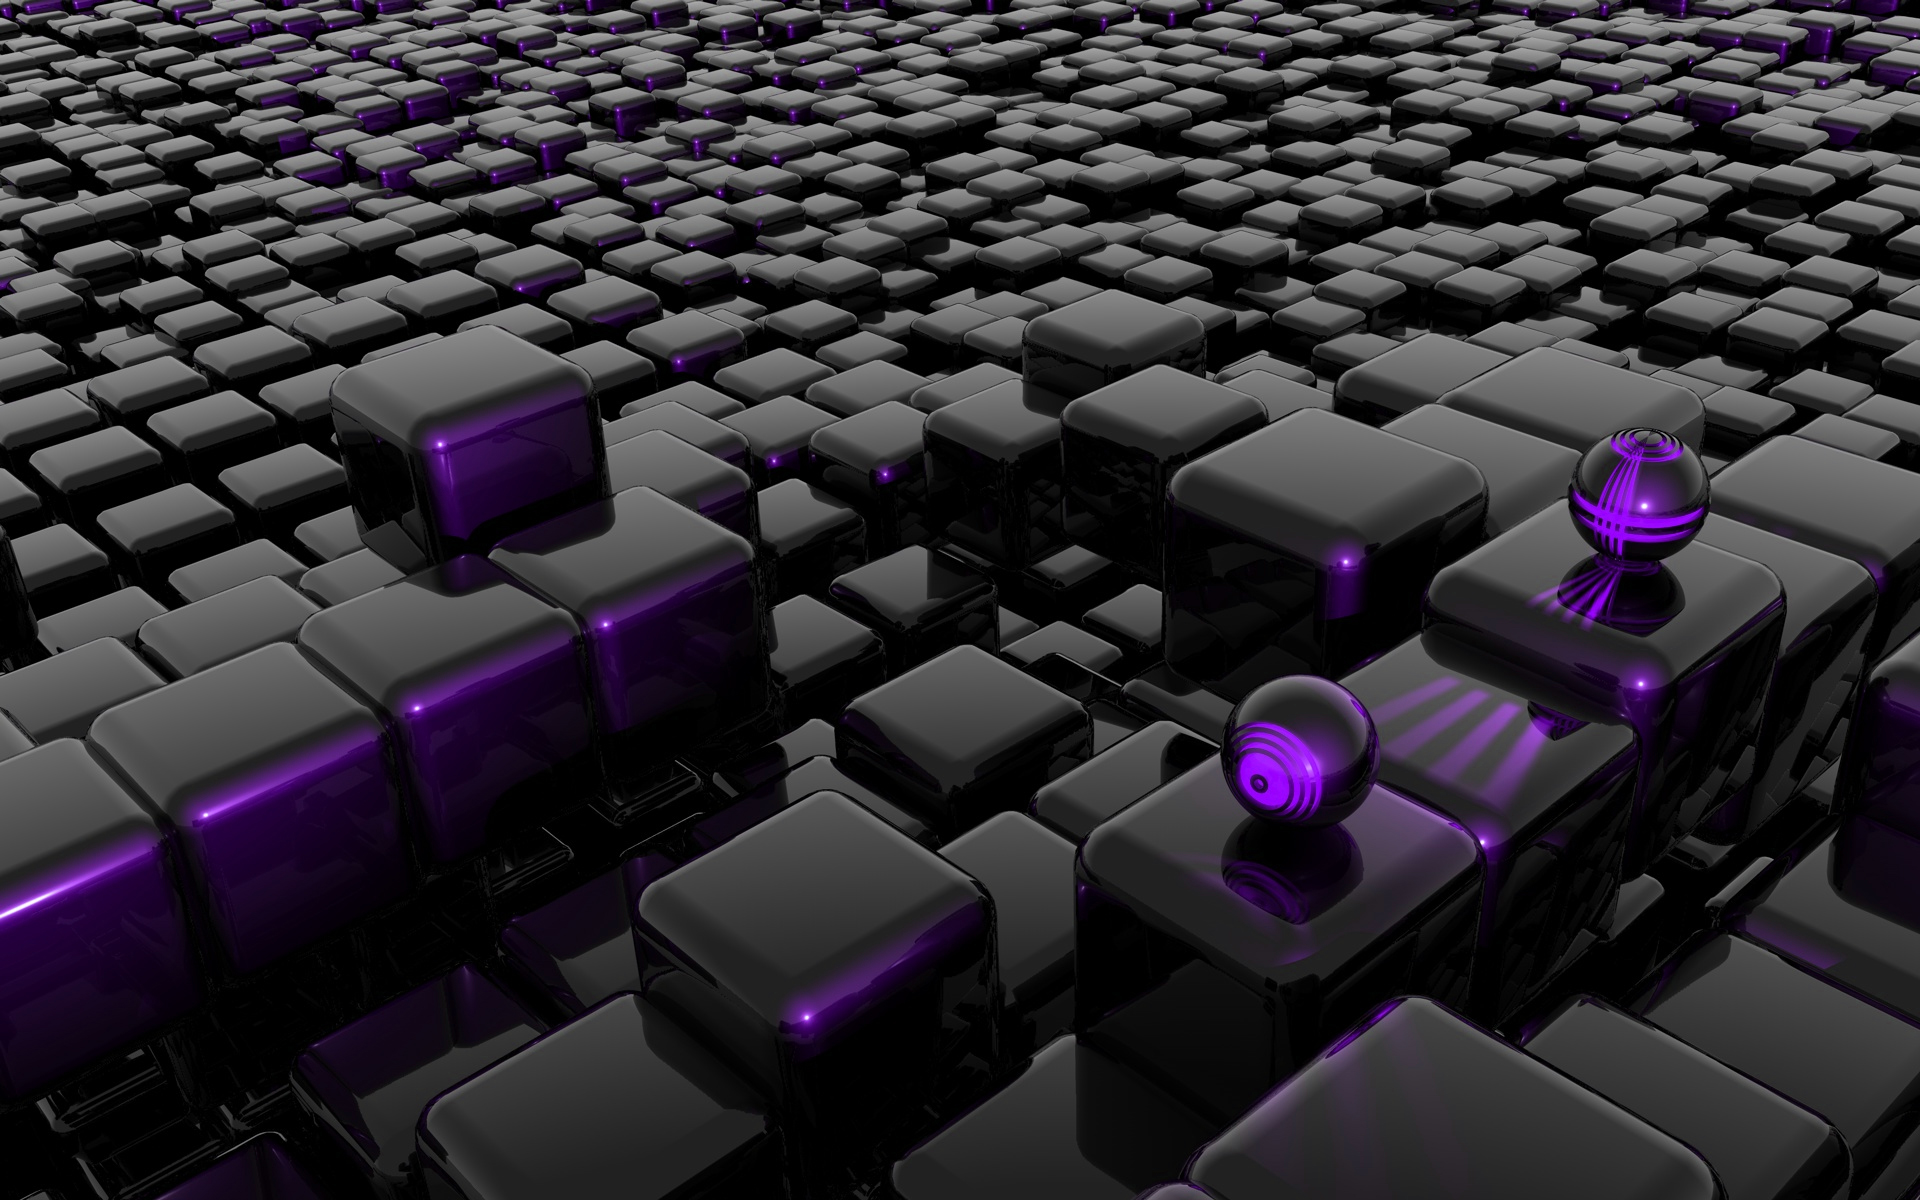 3d Cube Wallpapers: Background Images - Wallpaper Abyss